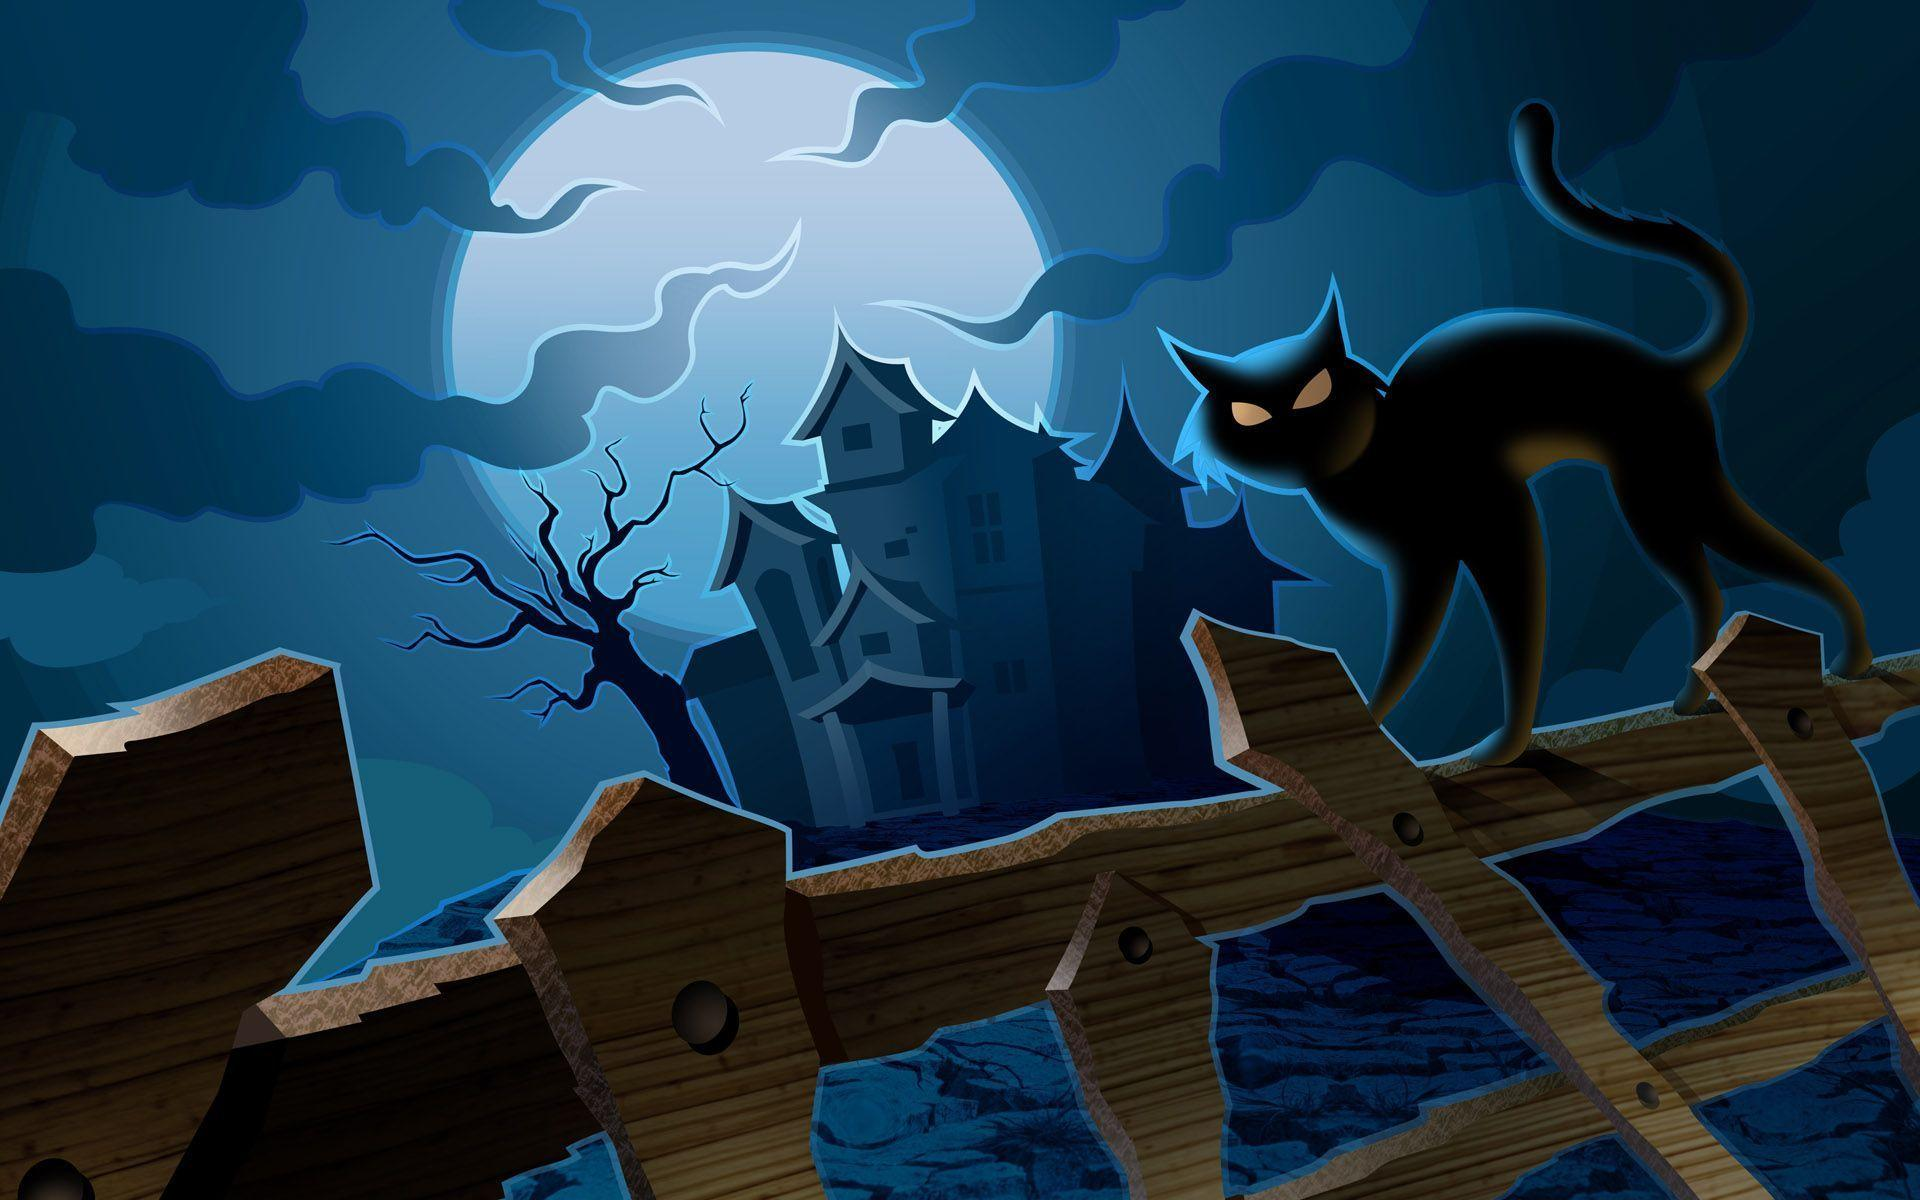 Scary Halloween 2012 HD Wallpapers   Pumpkins, Witches, Spider Web ...